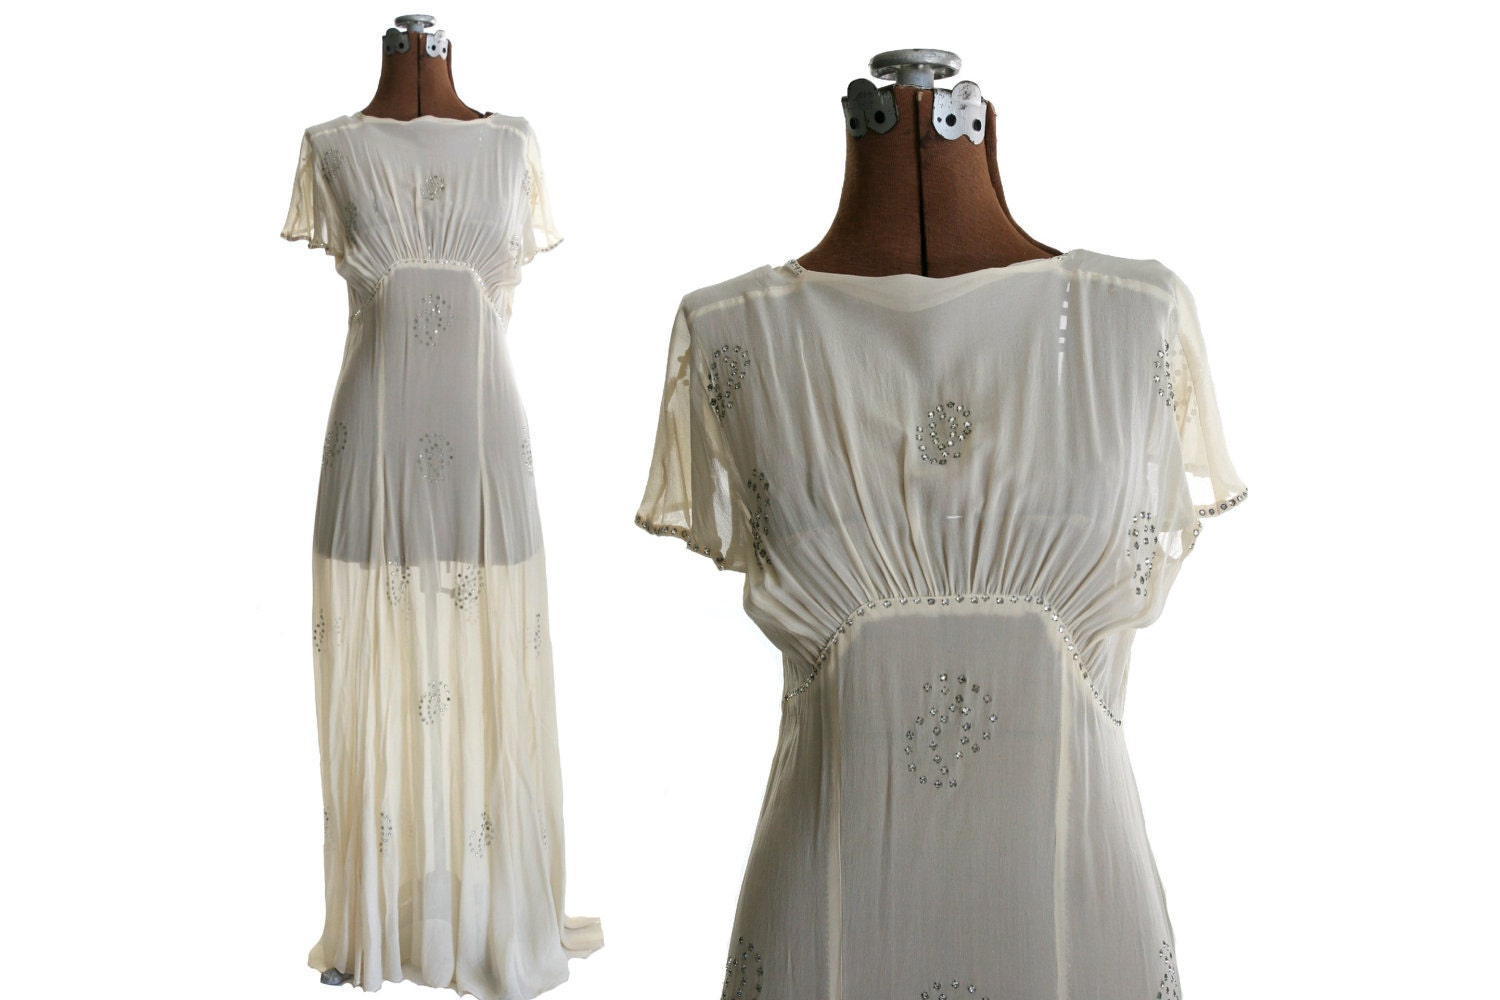 Vintage 1930s Silk Chiffon Wedding Dress With Rhinestones